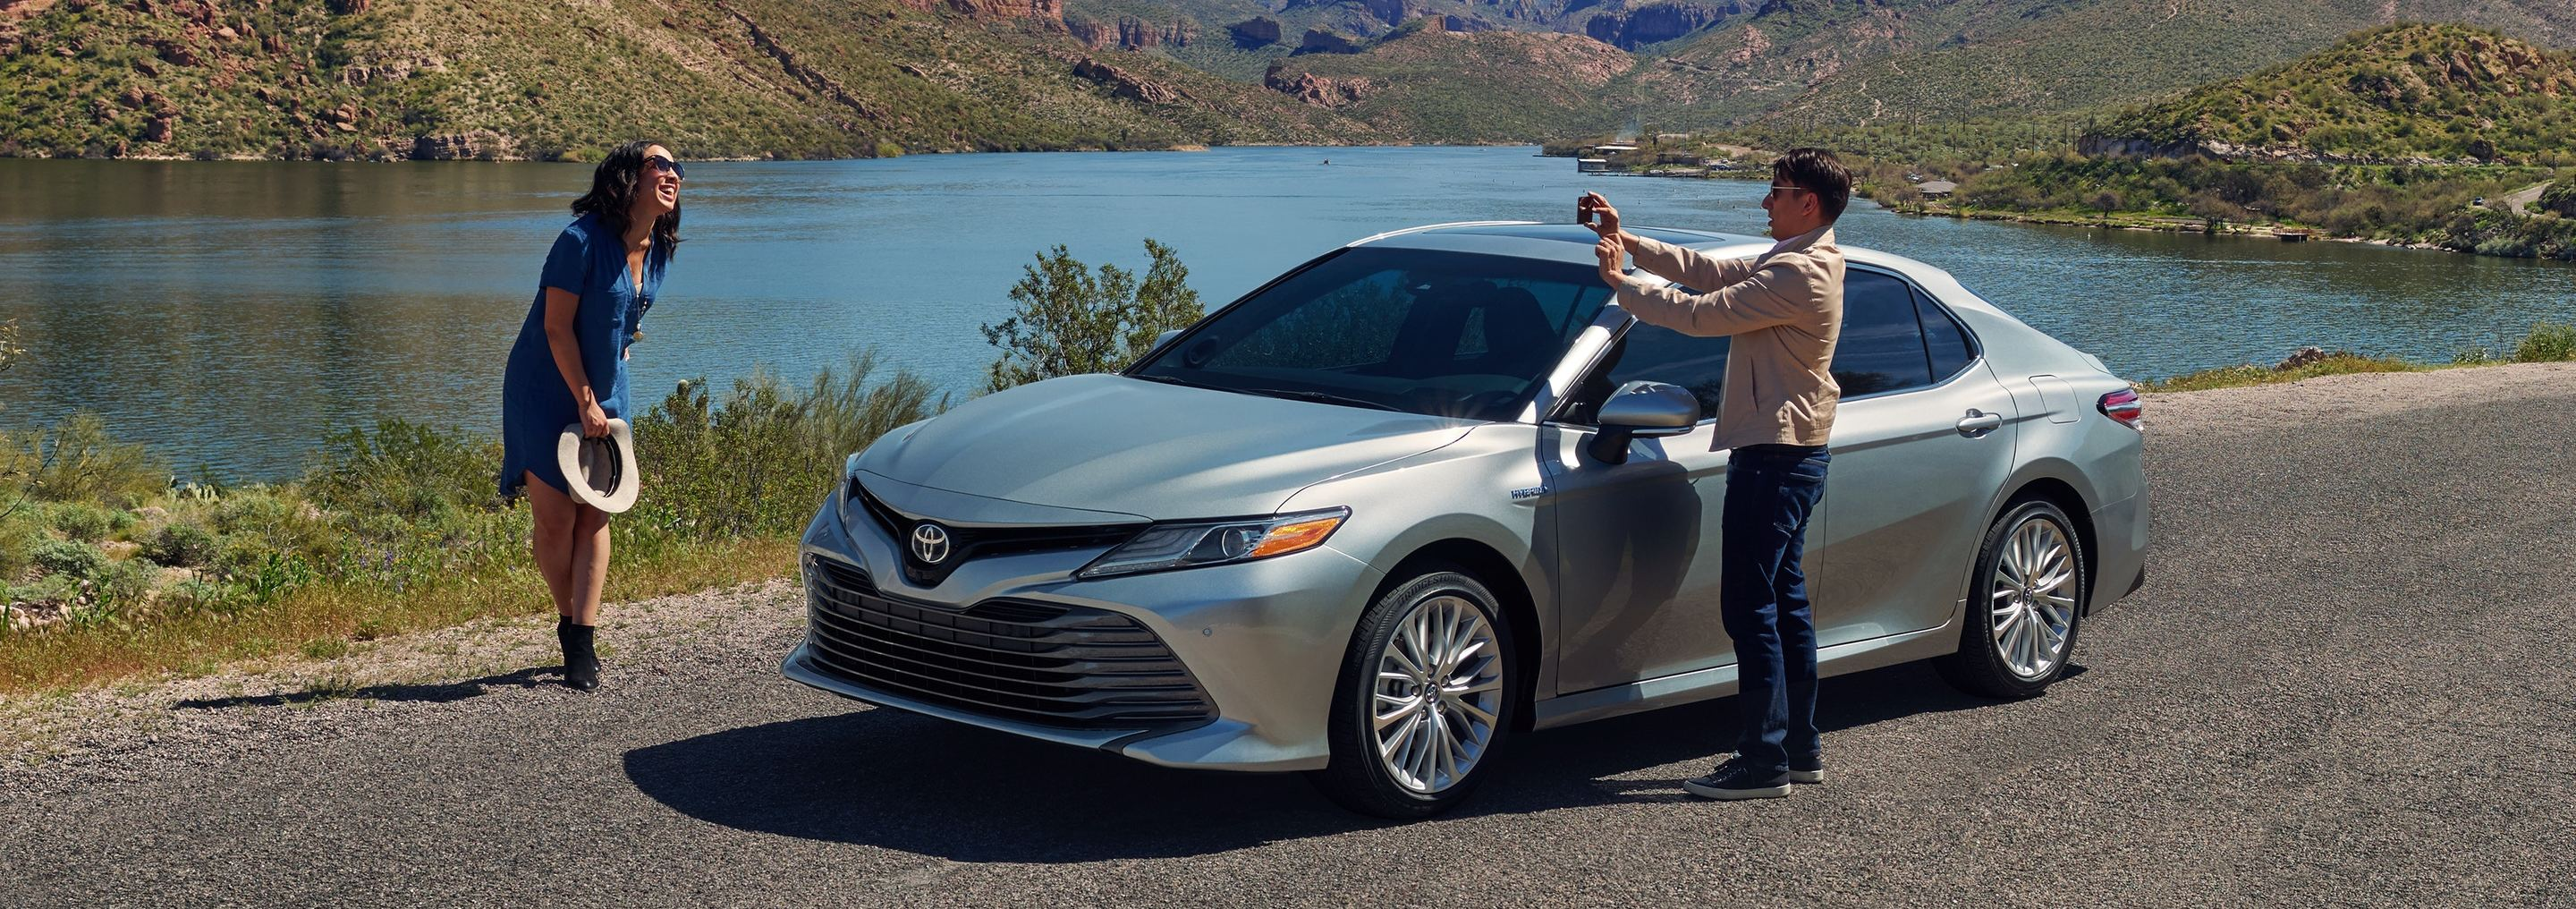 2020 Toyota Camry for Sale near Cleveland, OH